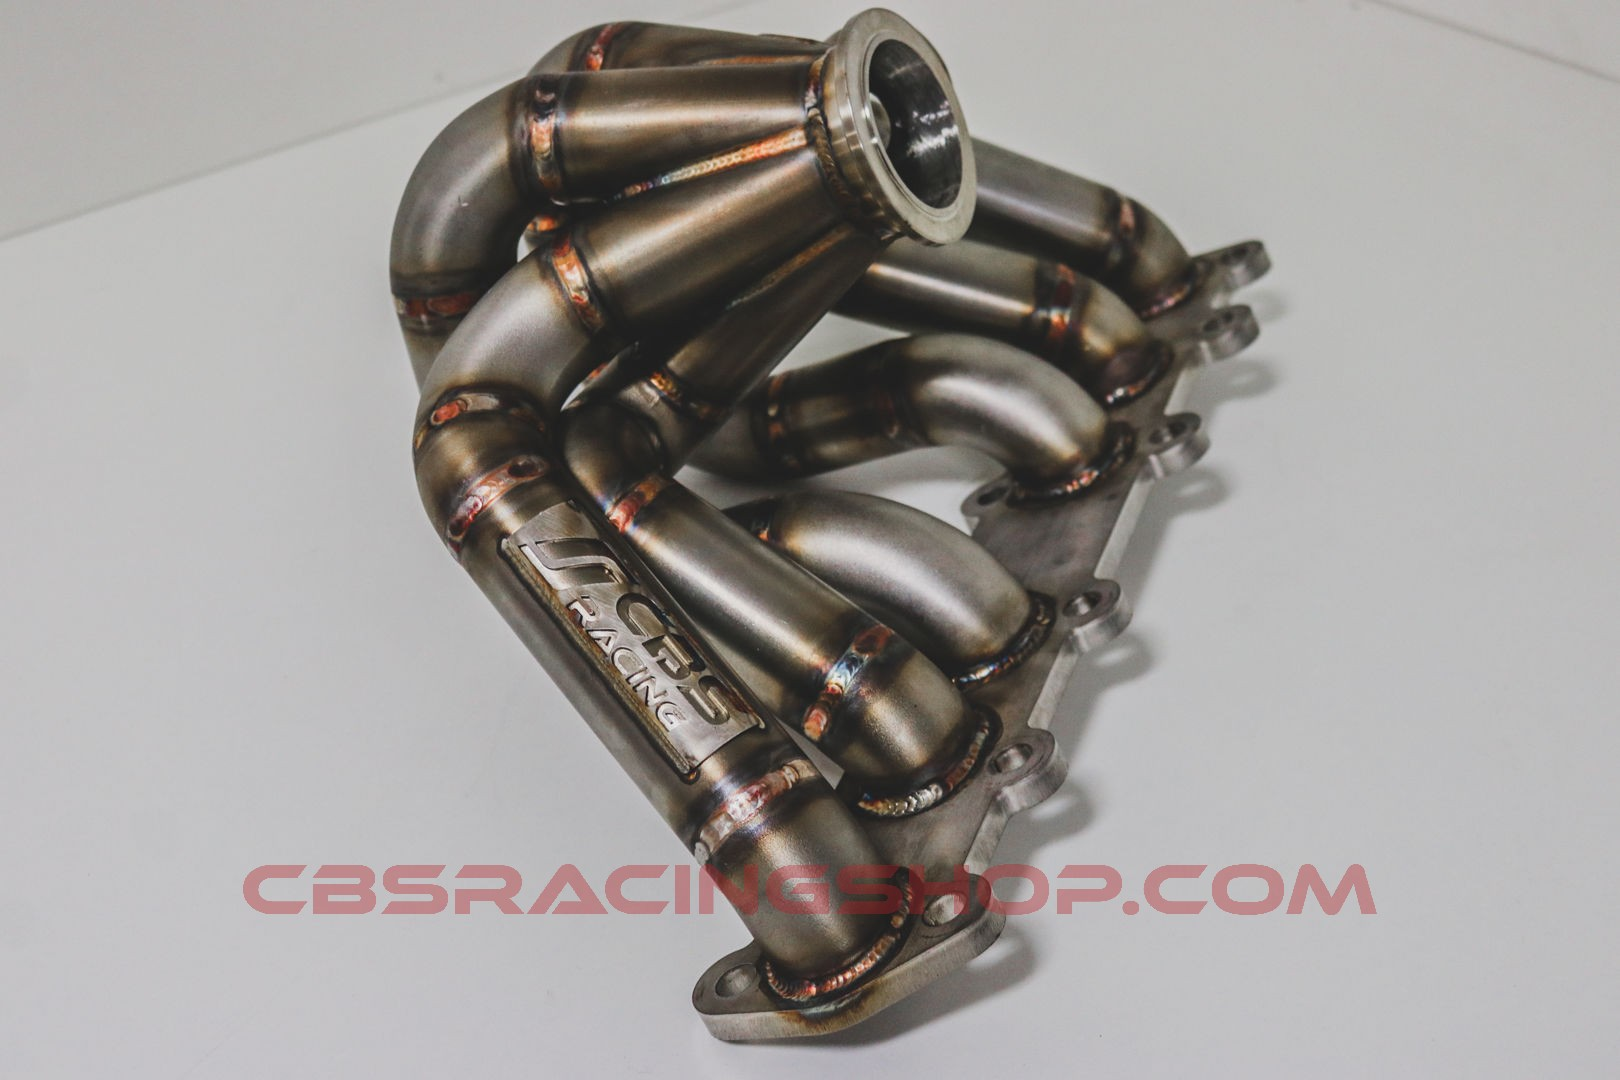 Afbeelding voor categorie Headers & Exhaust Manifolds